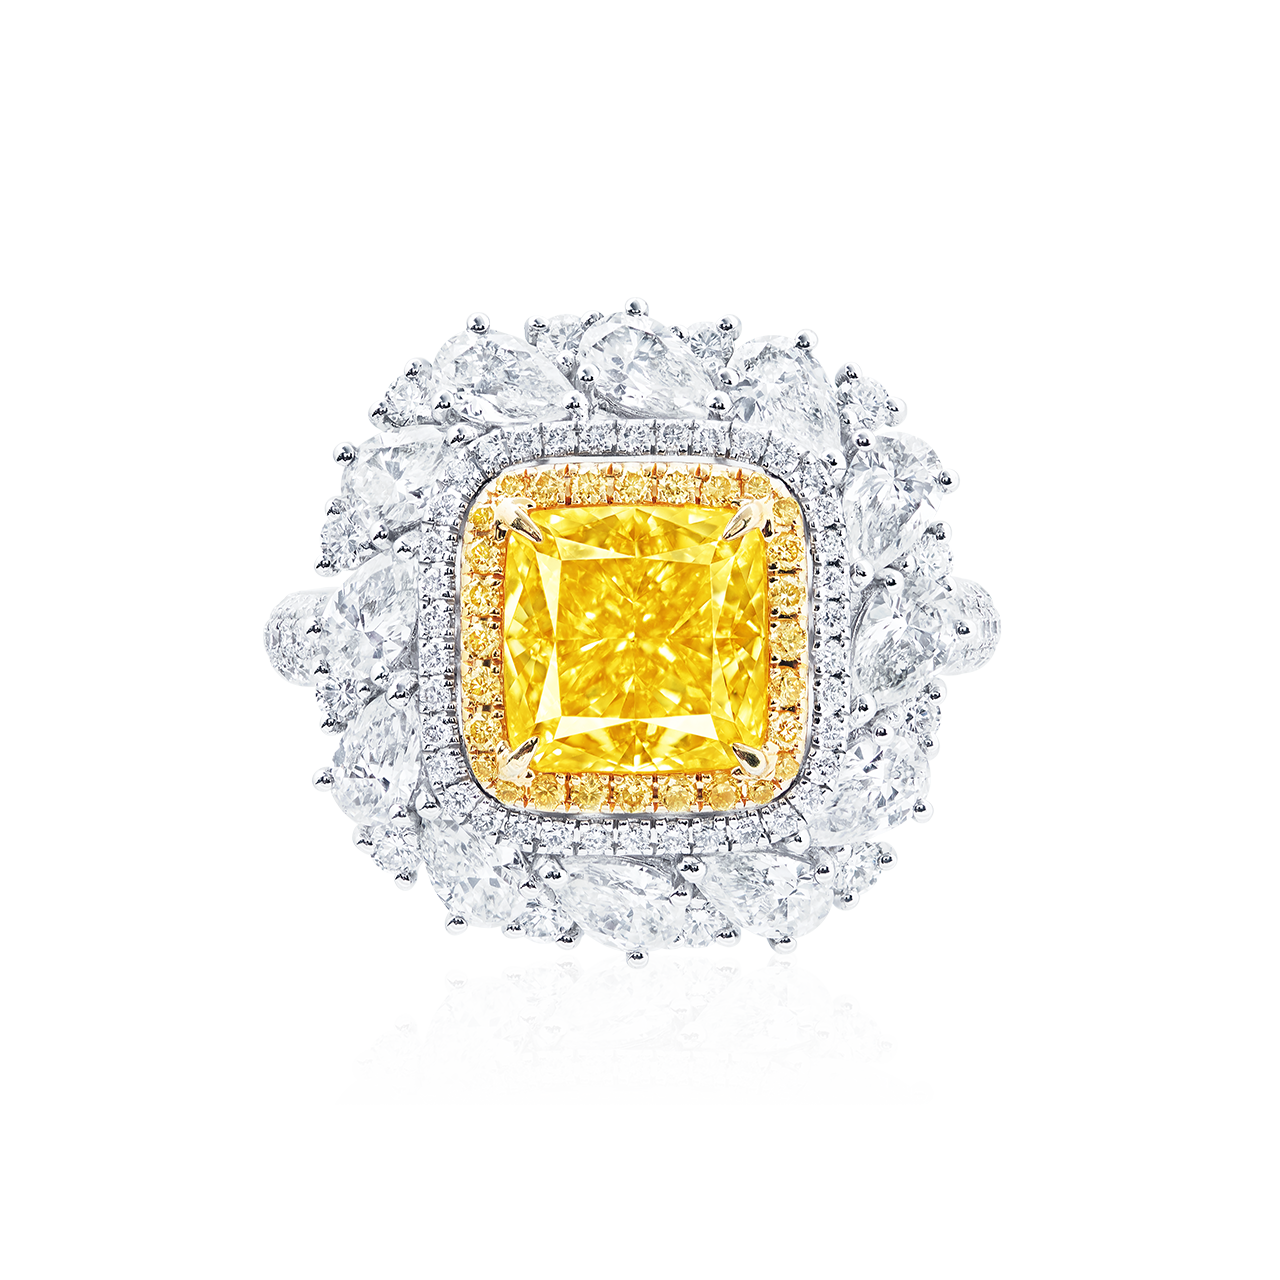 GIA 3.03 克拉 艷彩黃鑽鑽戒